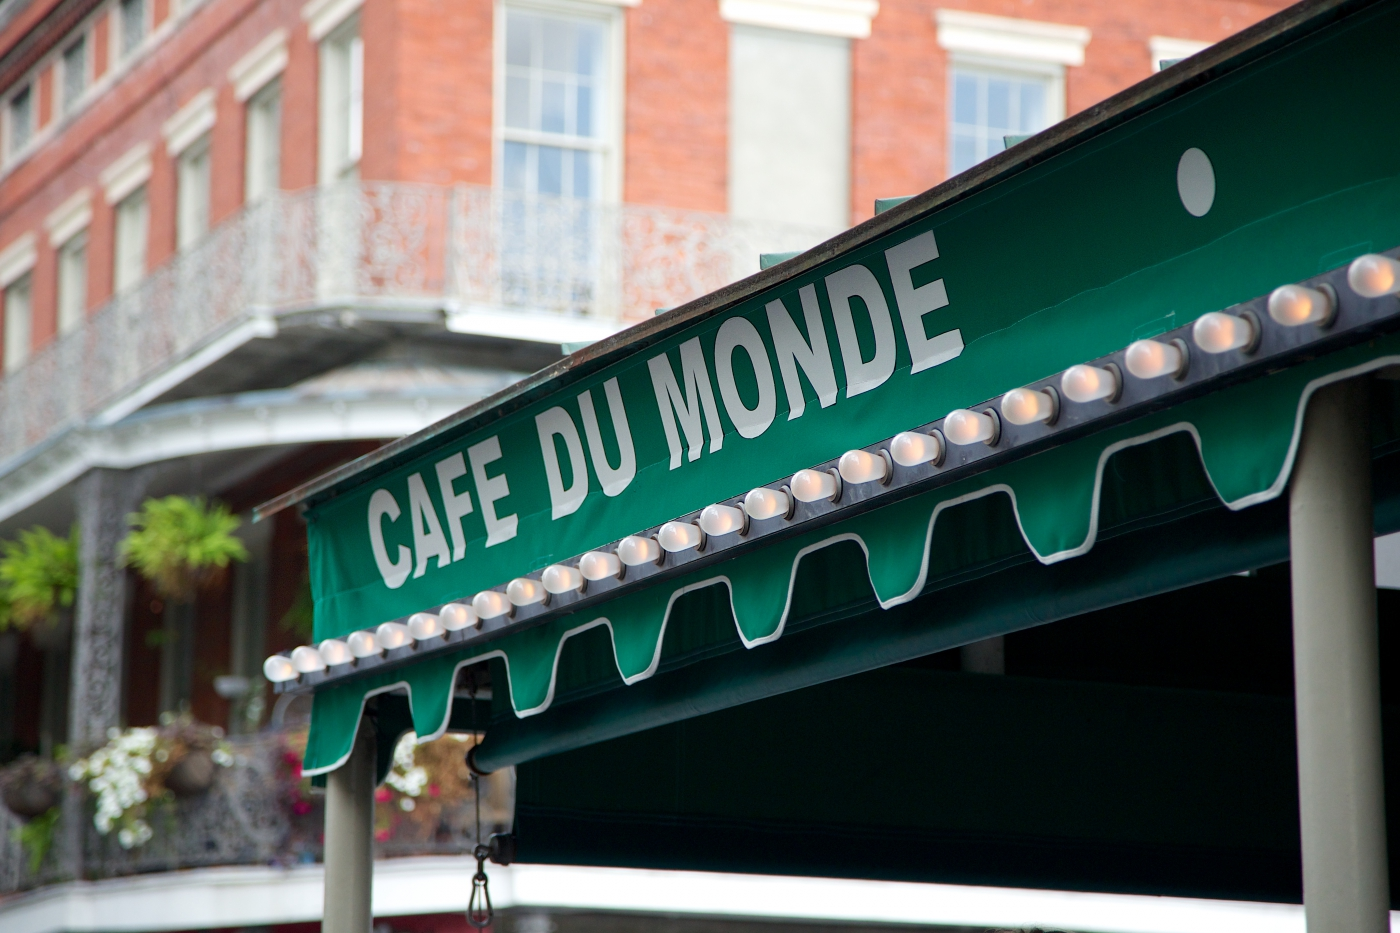 Get a world famous beignet at Cafe Du Monde!